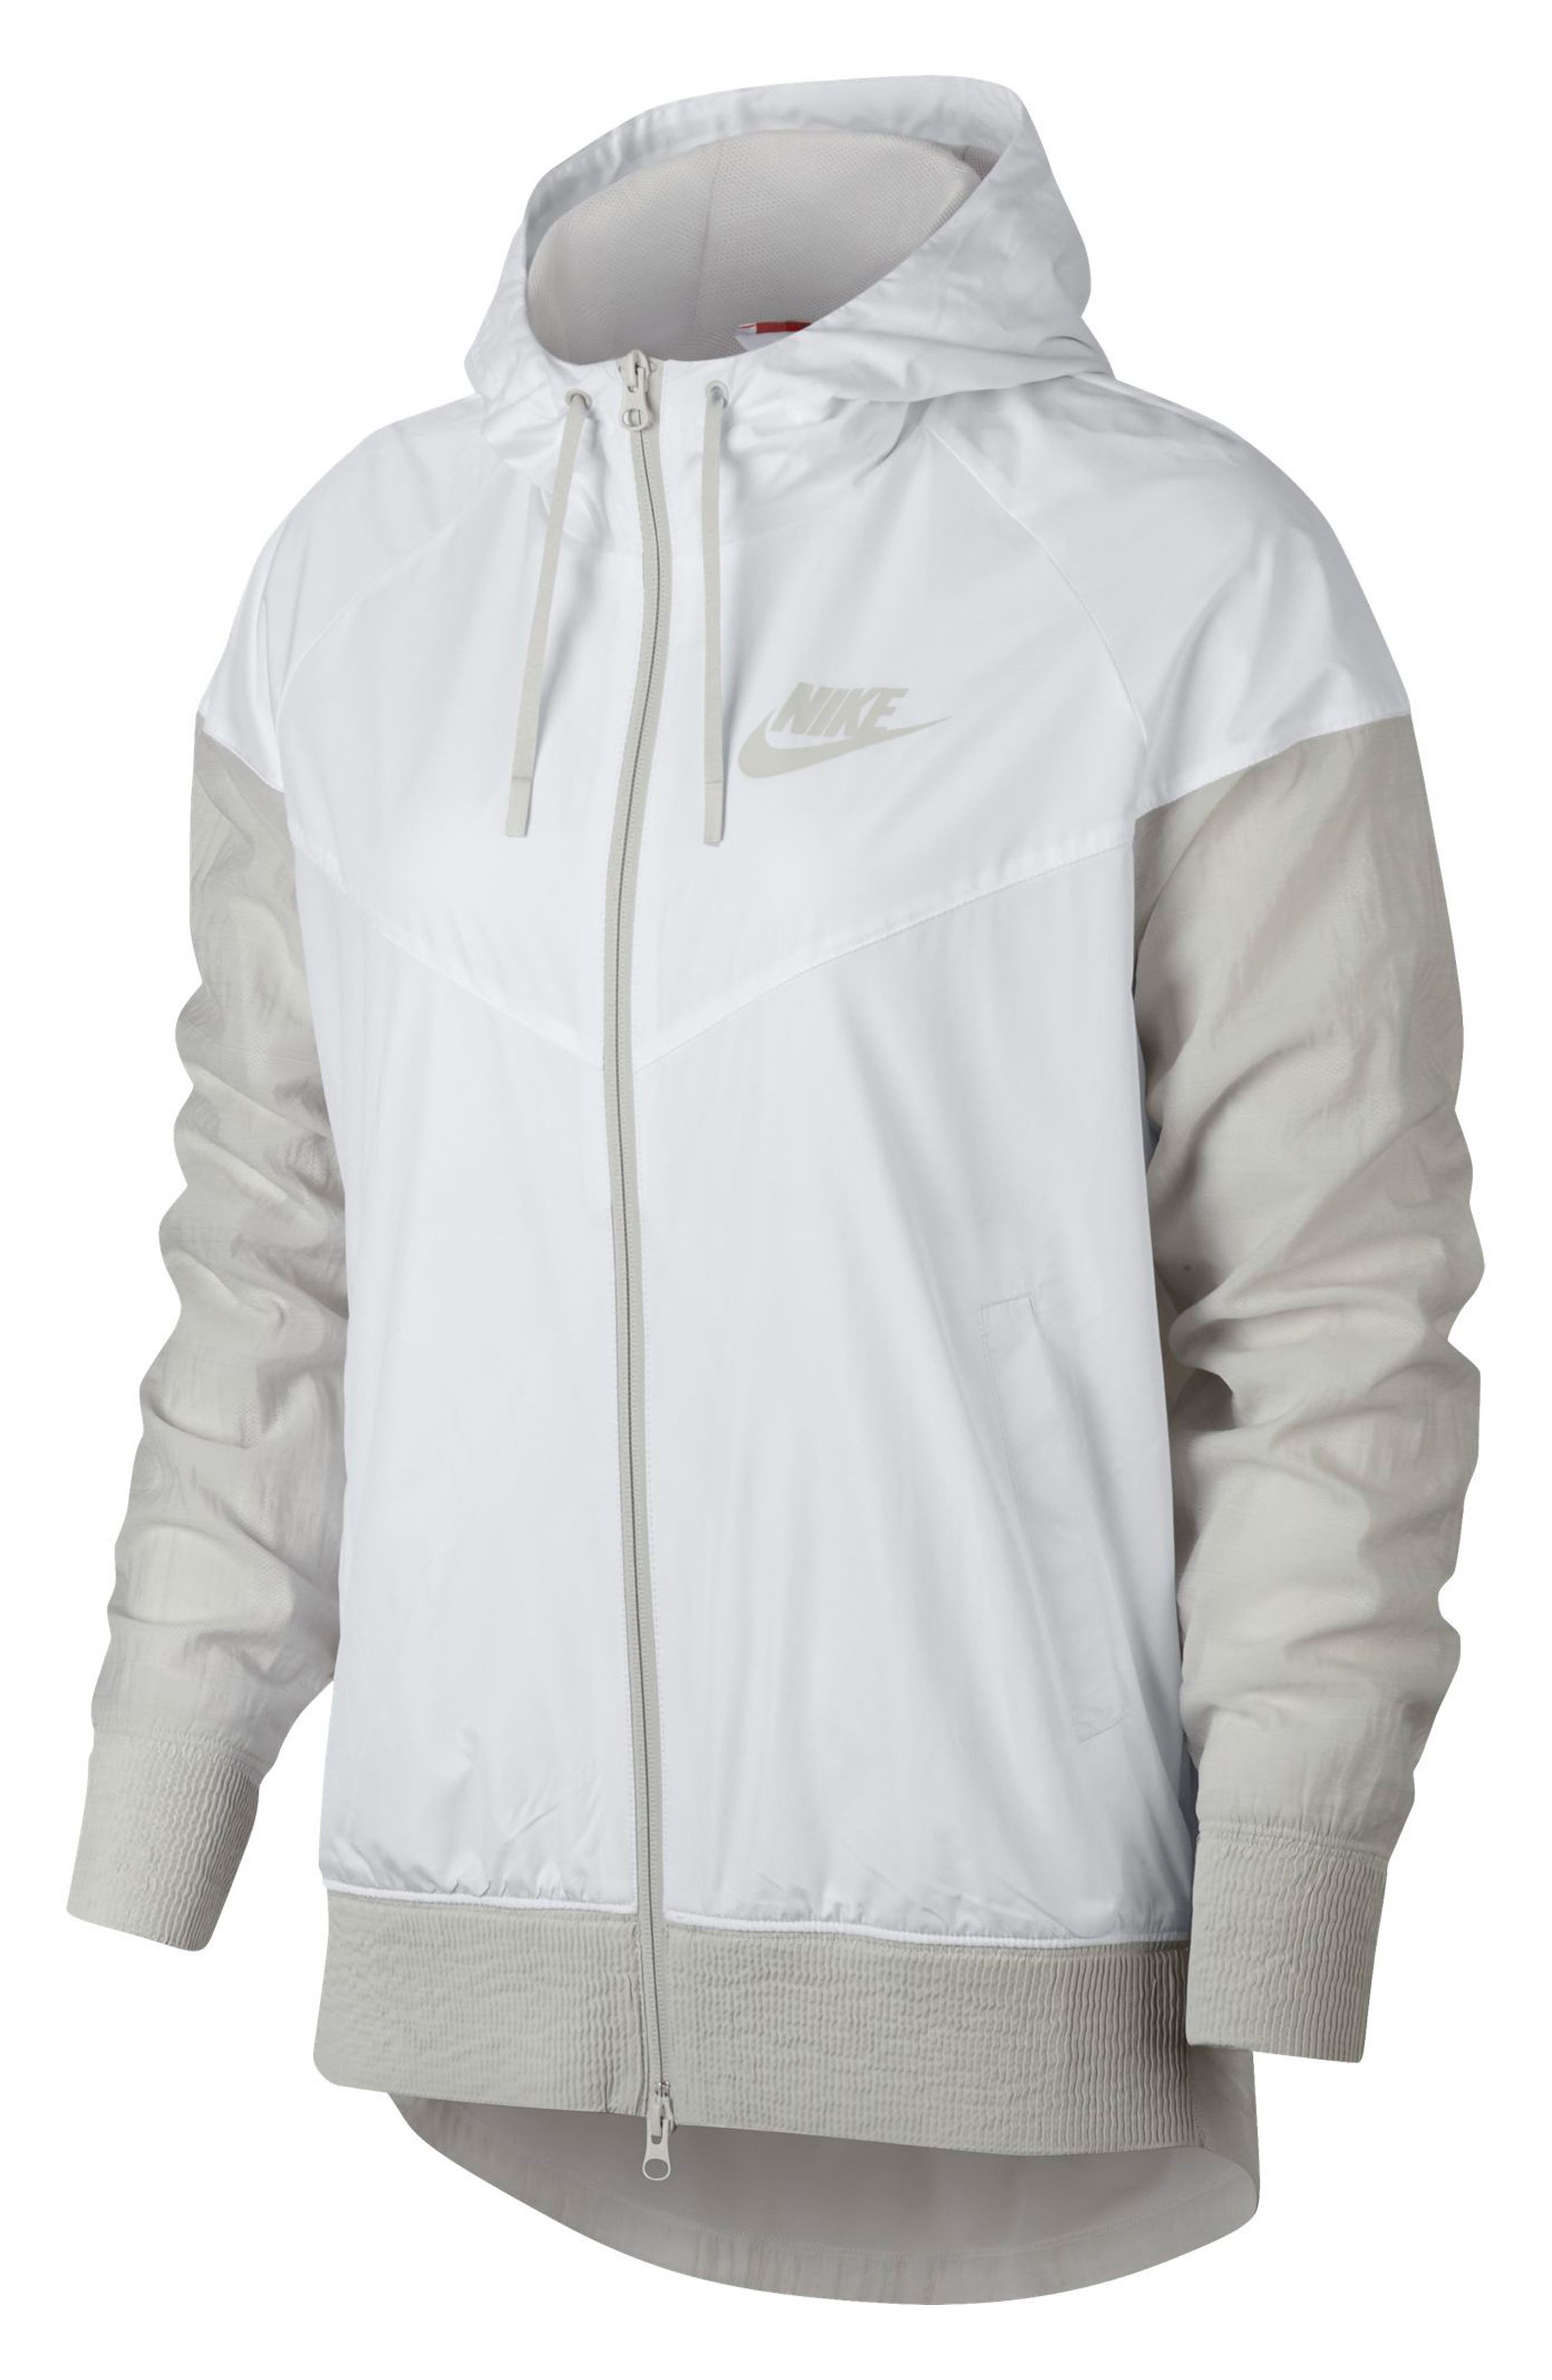 Nike Sportswear Women's Windrunner Water Repellent Jacket